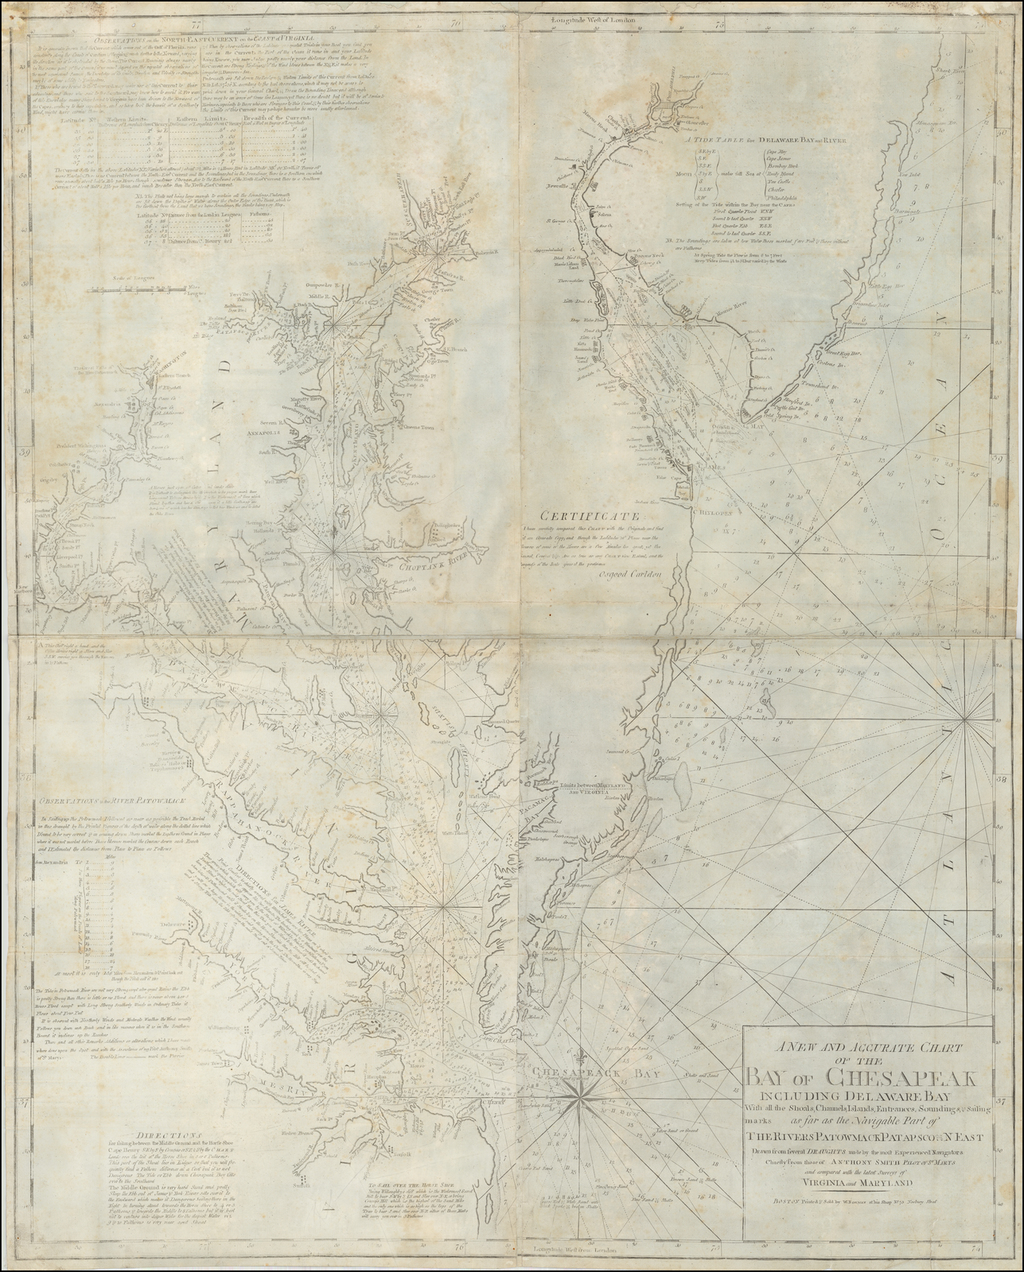 A New and Accurate Chart of the Bay of Chesapeak Including Delaware Bay With all the Shoals, Channels, Islands, Entrances, Soundings, & Sailing marks as far as the Navigable Part of The Rivers Patomack Patapsco & N. East.  . . . By William Norman